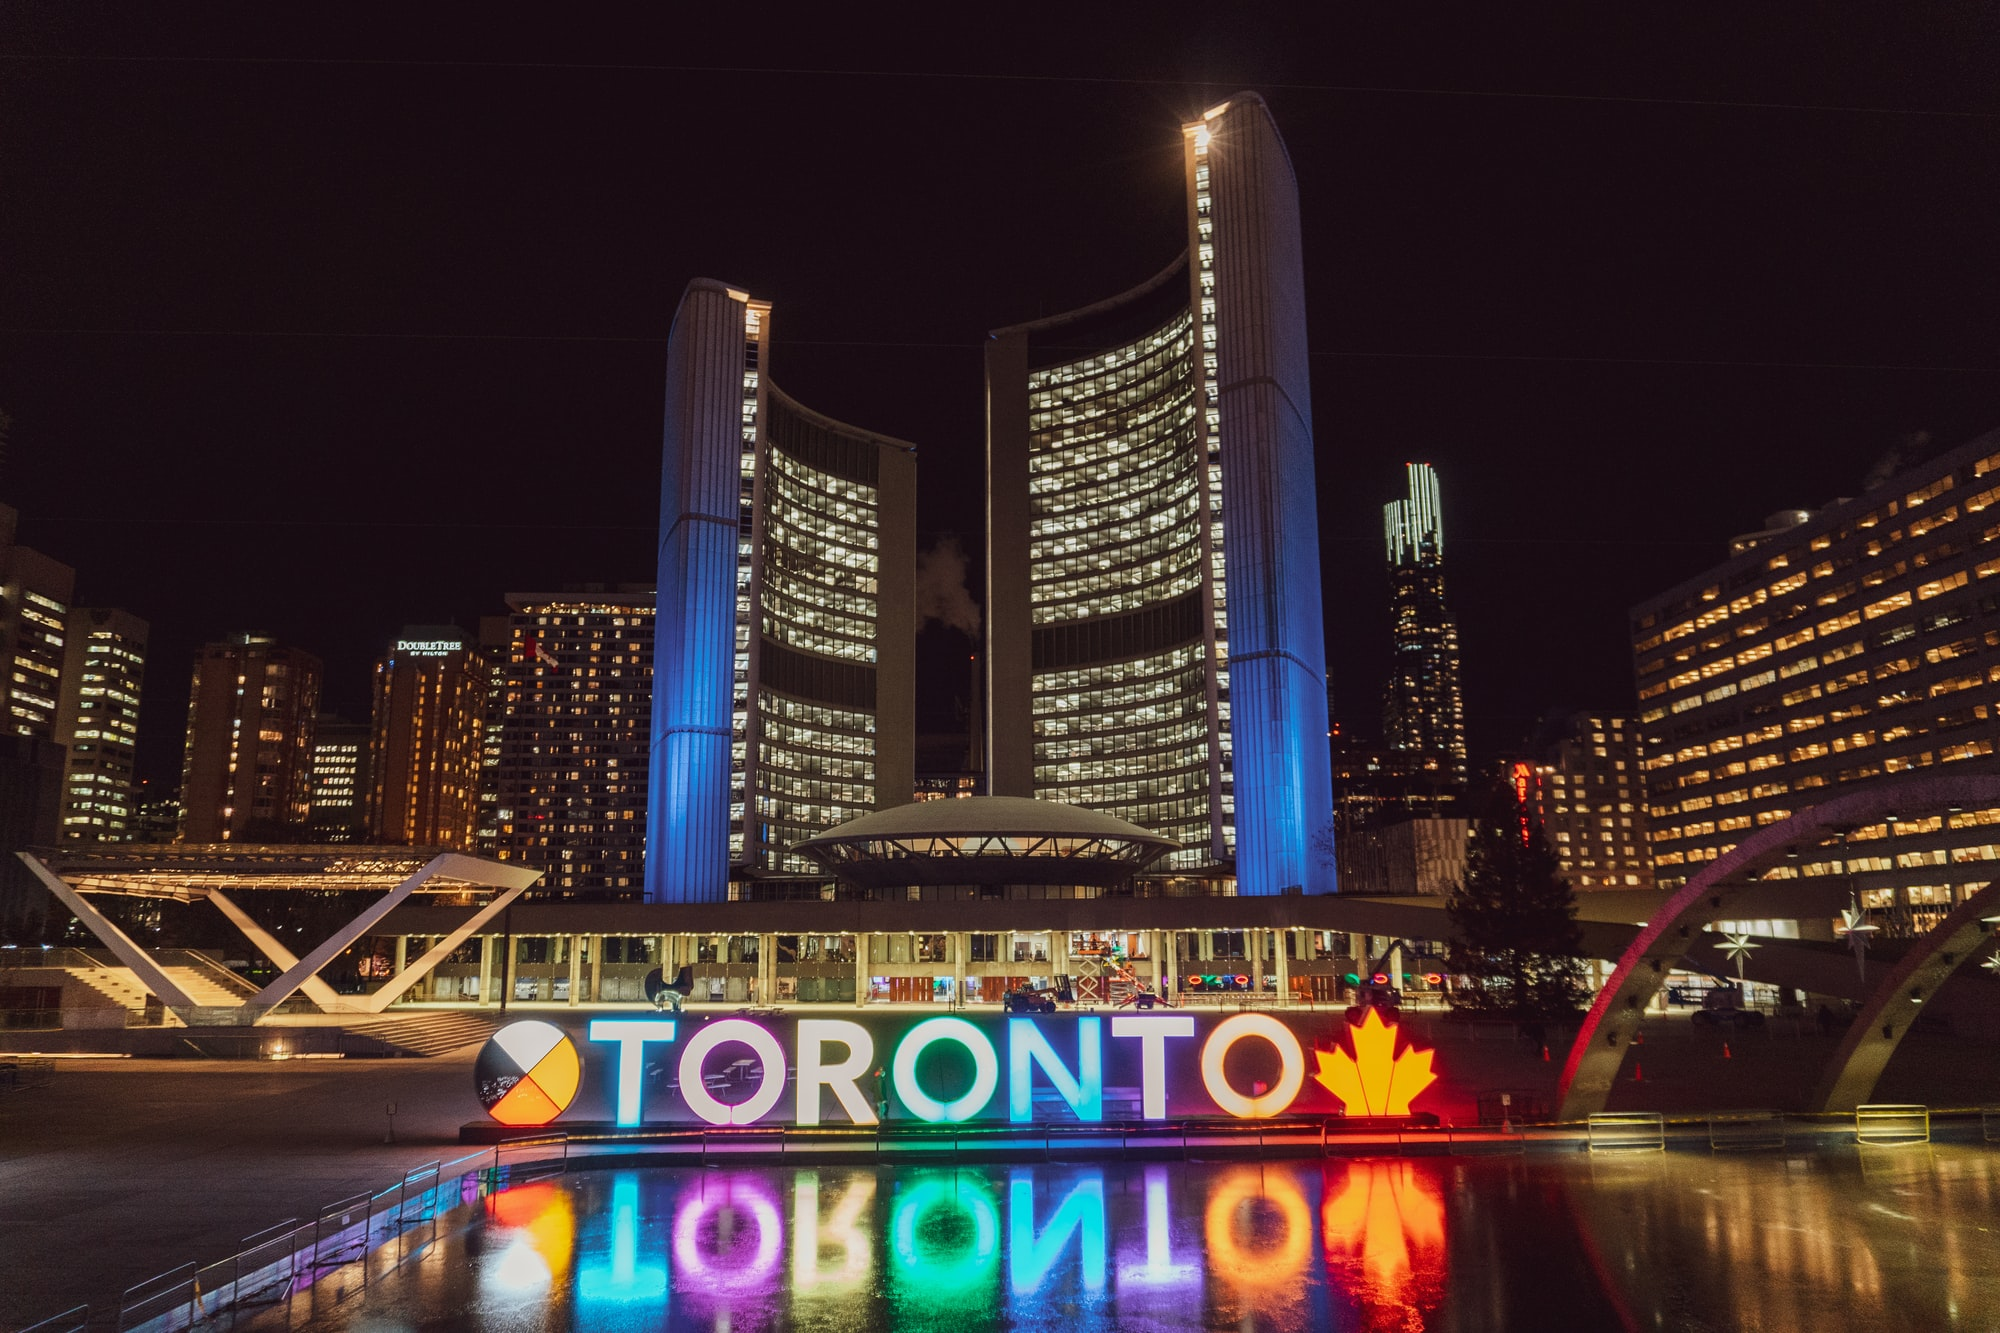 Labor Day weekend in Toronto, Ontario